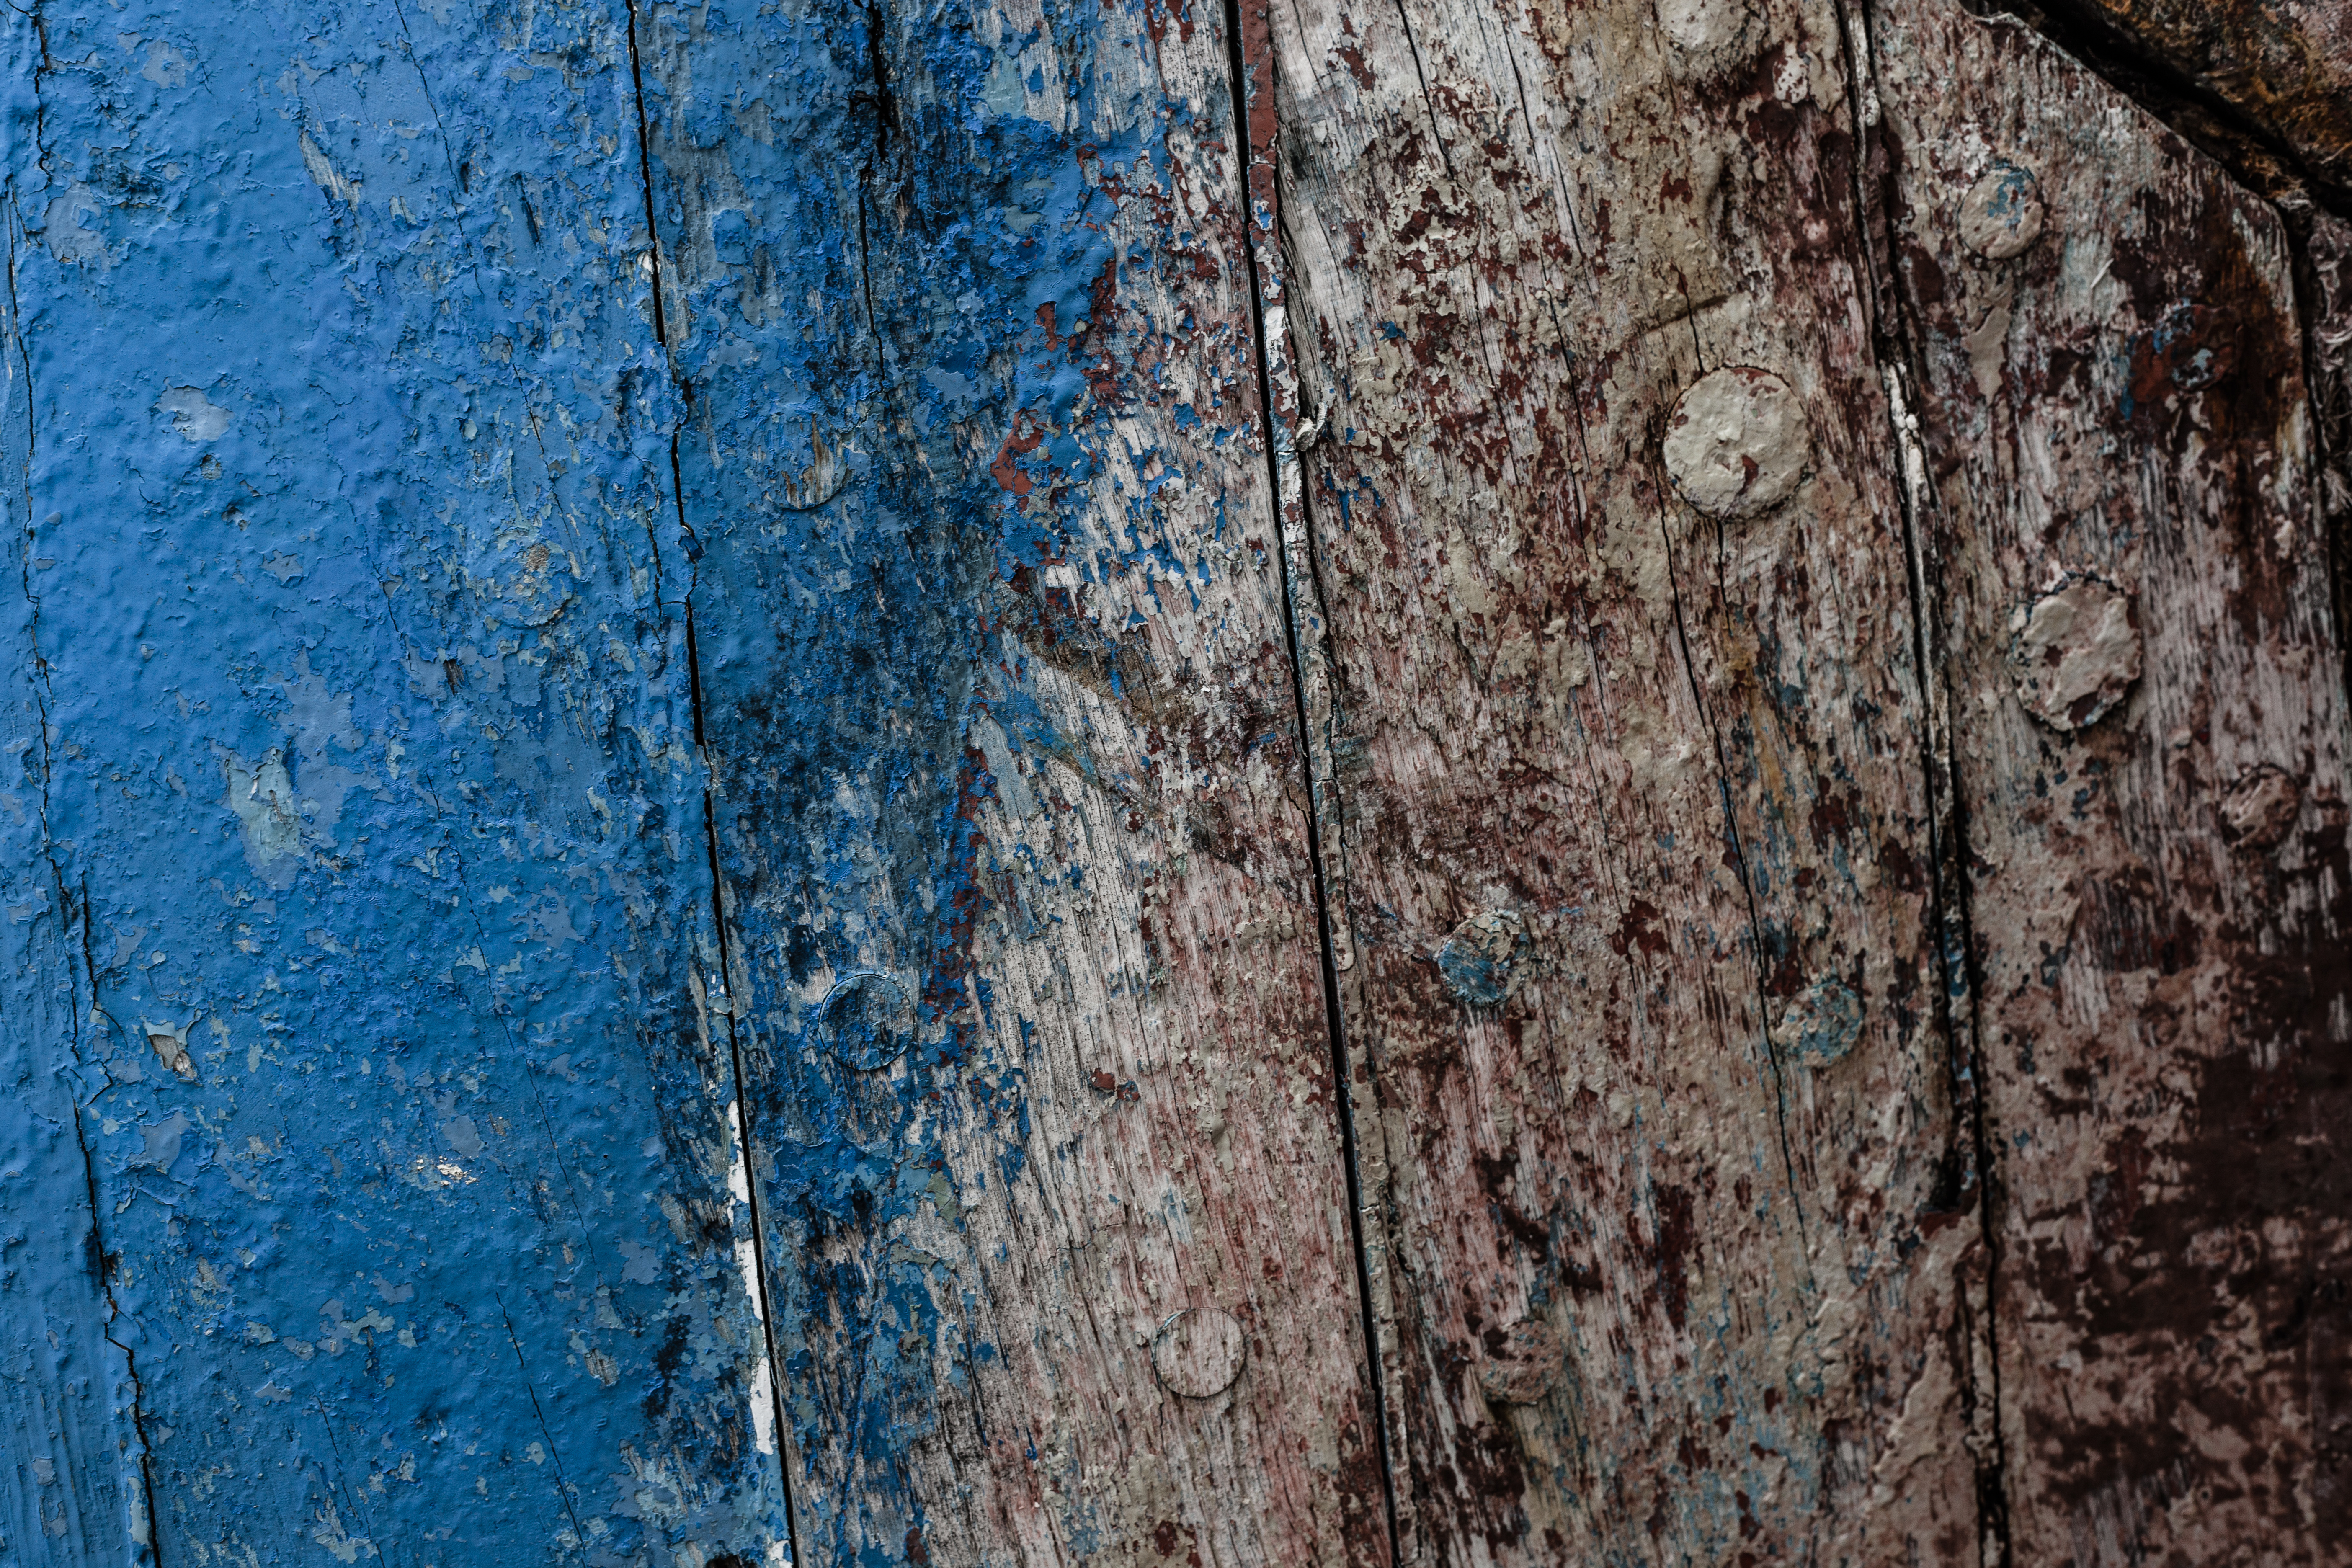 Old Blue Wood Texture, Blue, Damaged, Gritty, Grunge, HQ Photo